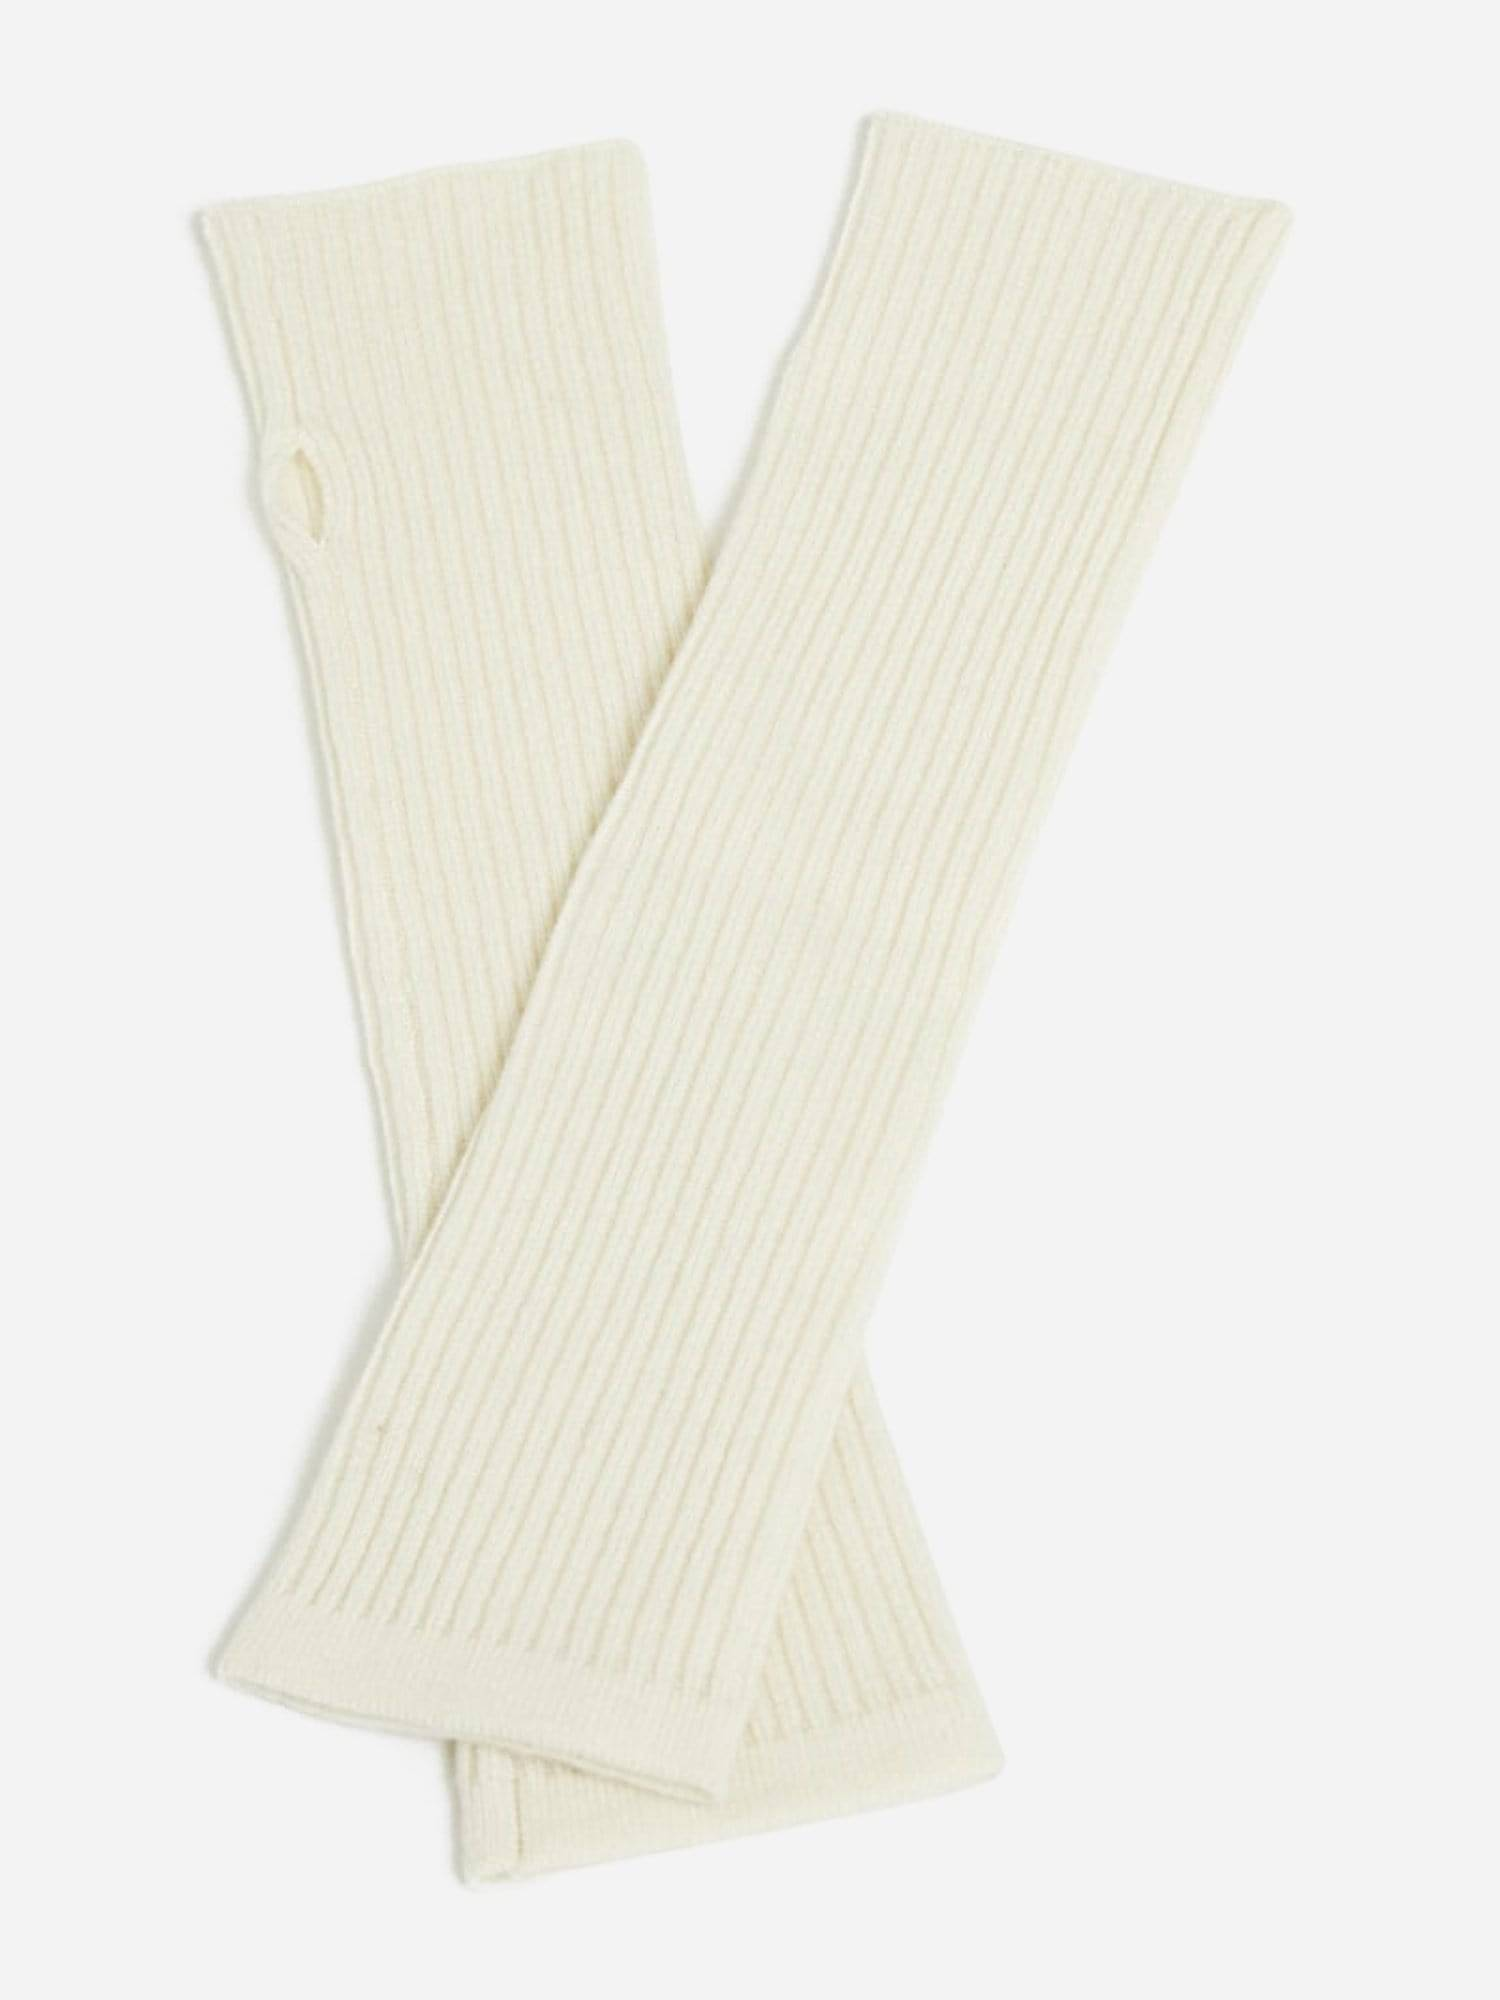 StateCashmere Cashmere Knit Fingerless Arm Warmer Mitten Gloves (Ivory / OS)